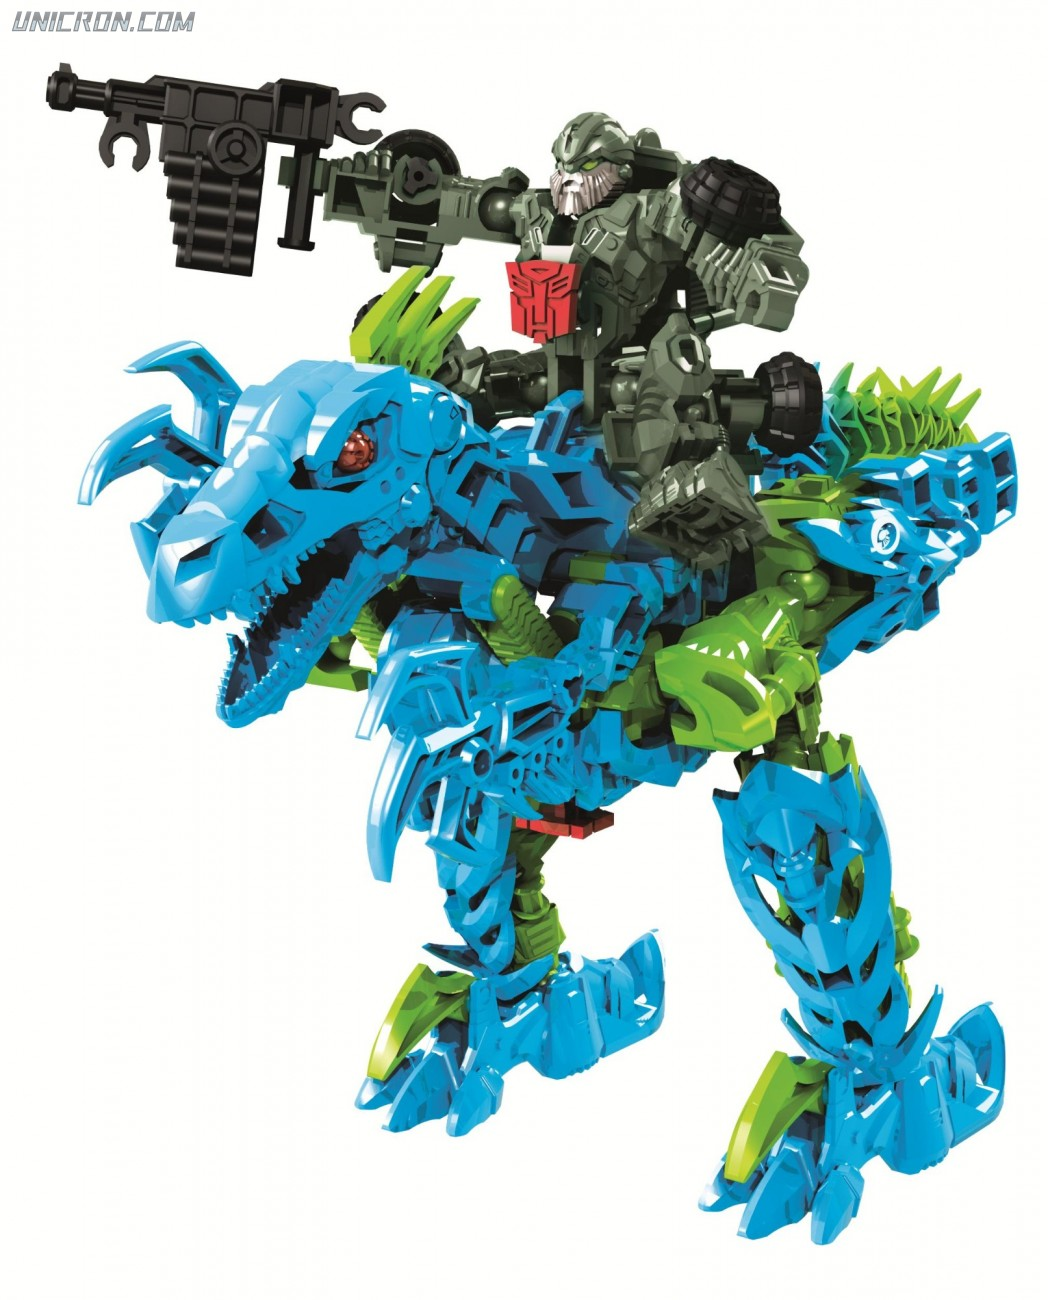 Transformers Construct-Bots Hound - Construct-Bots, Dino Riders toy